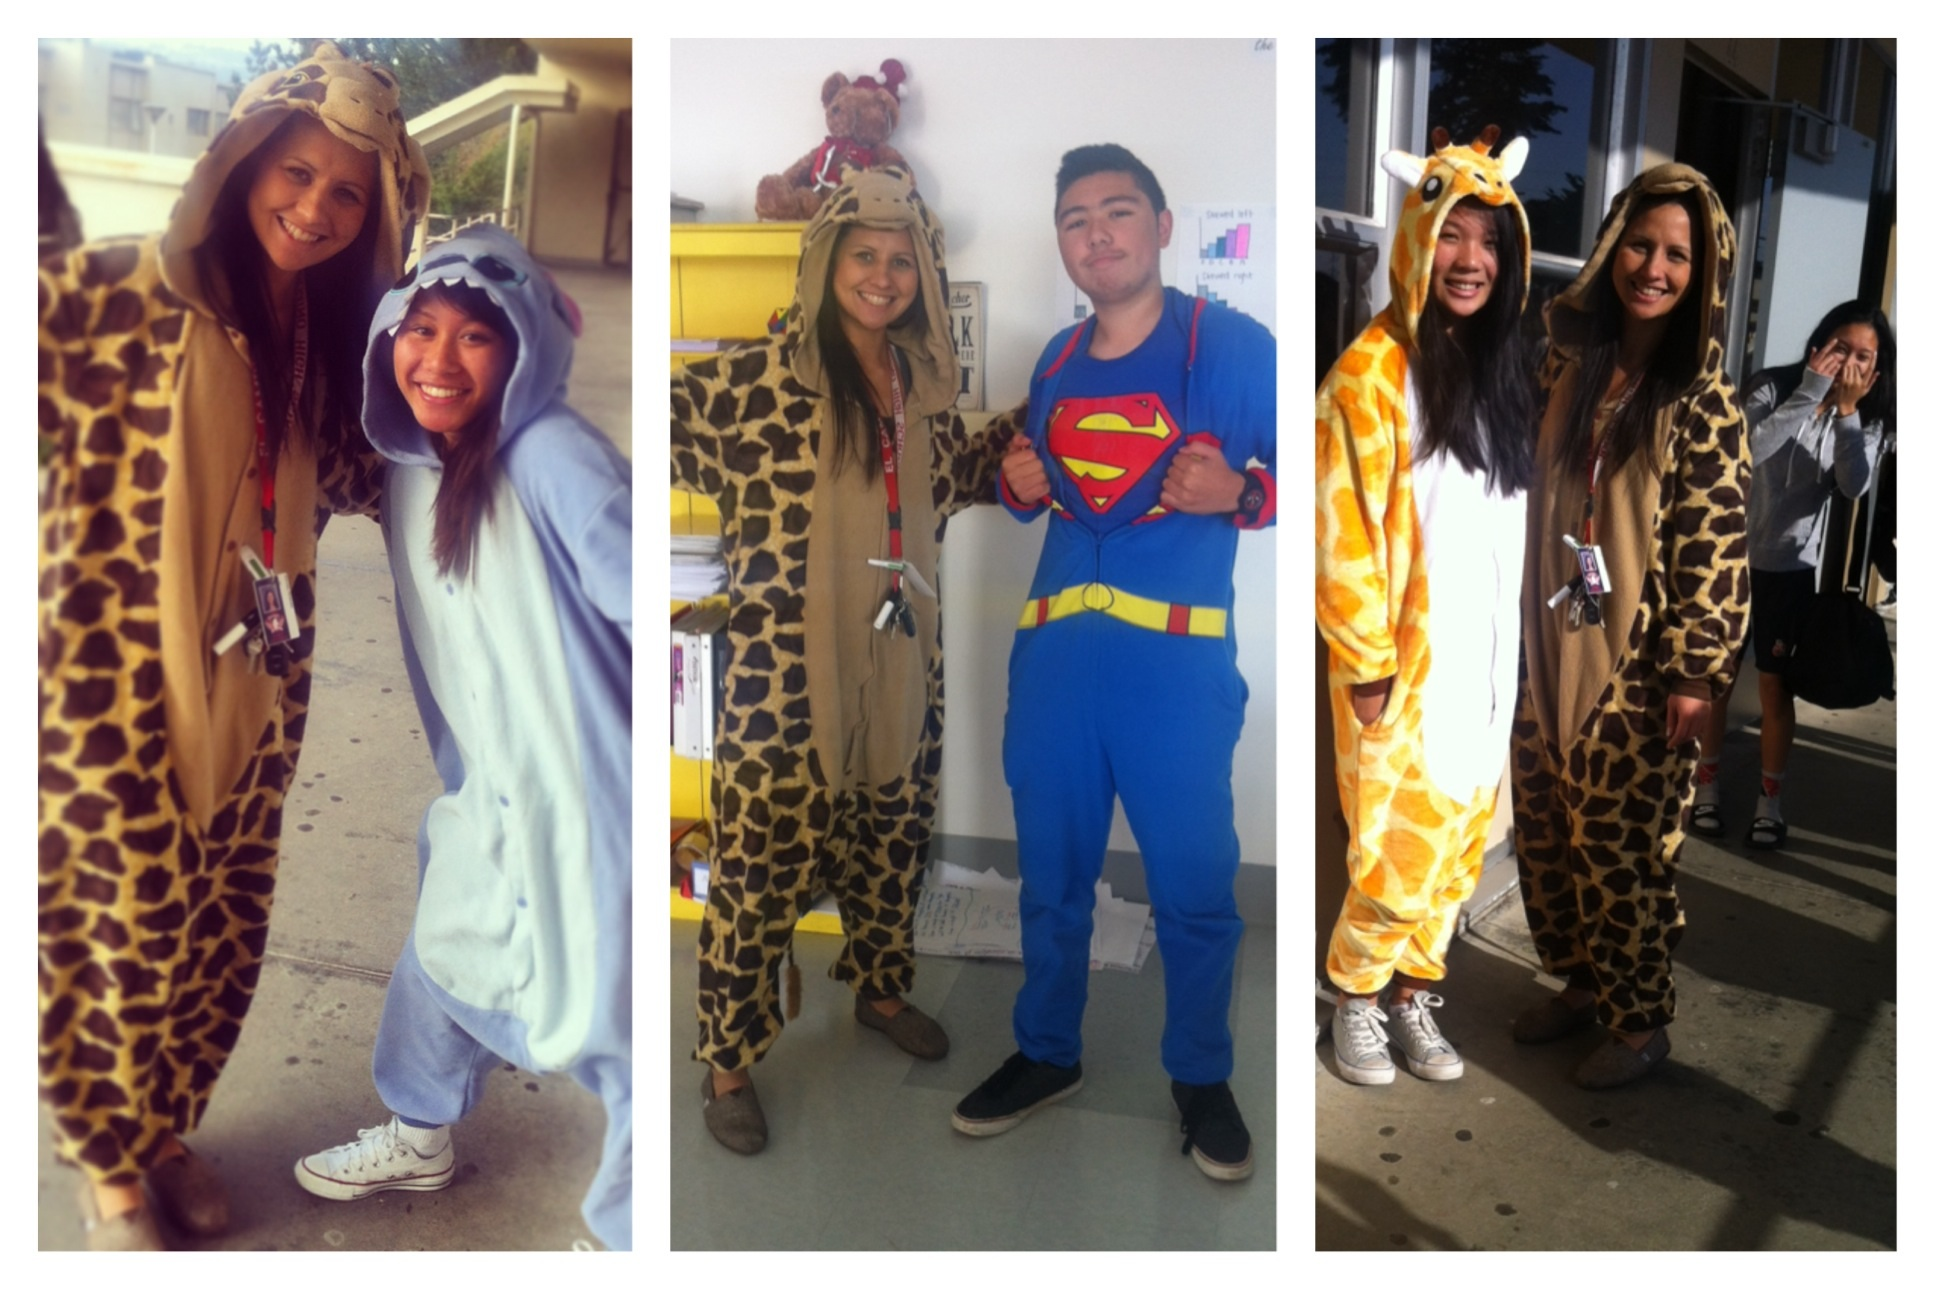 Pajama Day with some students in Onesies